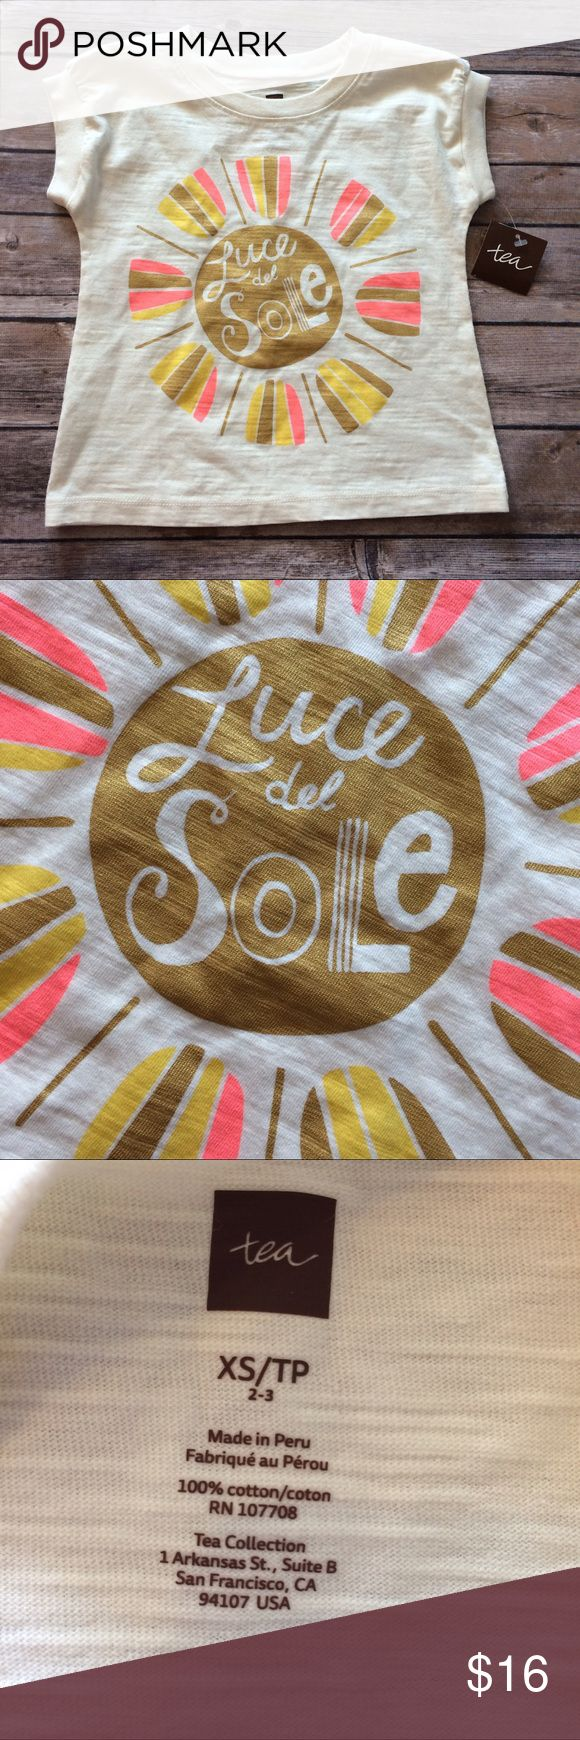 Tea Collection luce del sole shirt size 2-3 Short sleeve Luce del sole shirt. Pale yellow or offwhite. Features gold/pink/yellow sun. Tag size 2-3 and runs short/toward the lower end of the range imo. New with tags! Smoke free dog friendly home. Always a bundle discount in my closet. Tea Collection Shirts & Tops